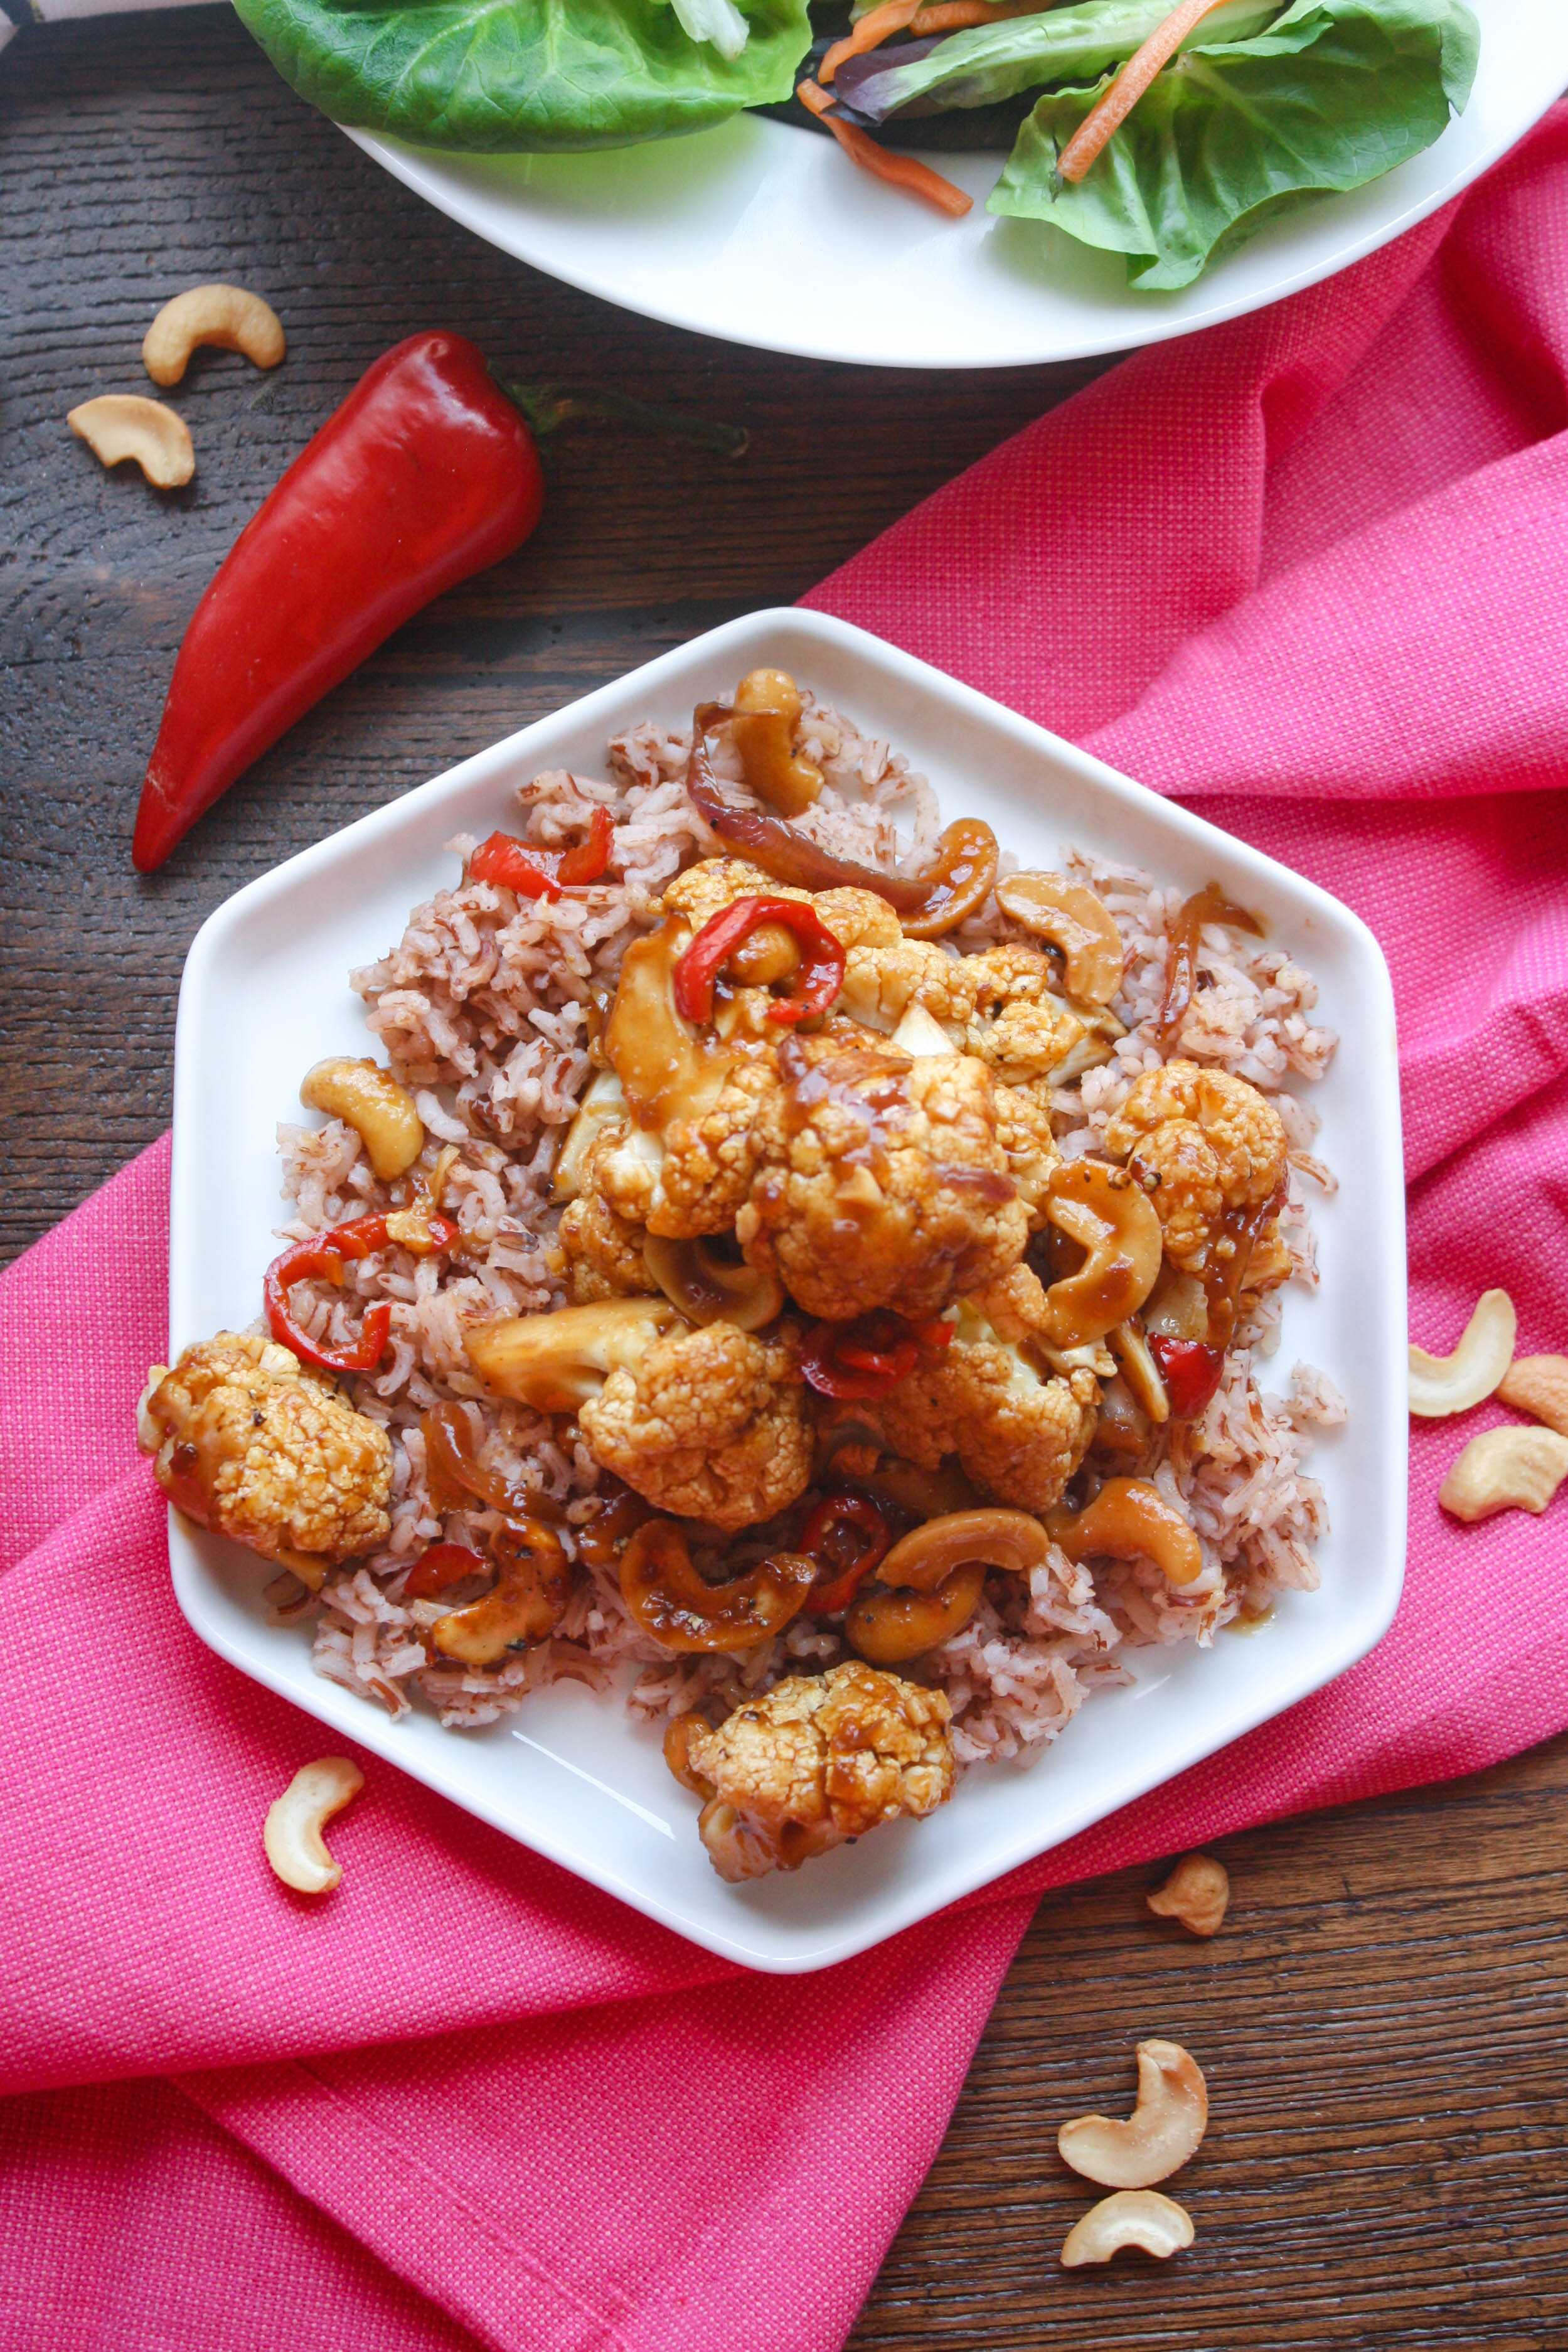 Kung Pao Cauliflower is a tasty take on a Chinese favorite dish. You choose whether to serve this as an appetizer, side, or main dish!